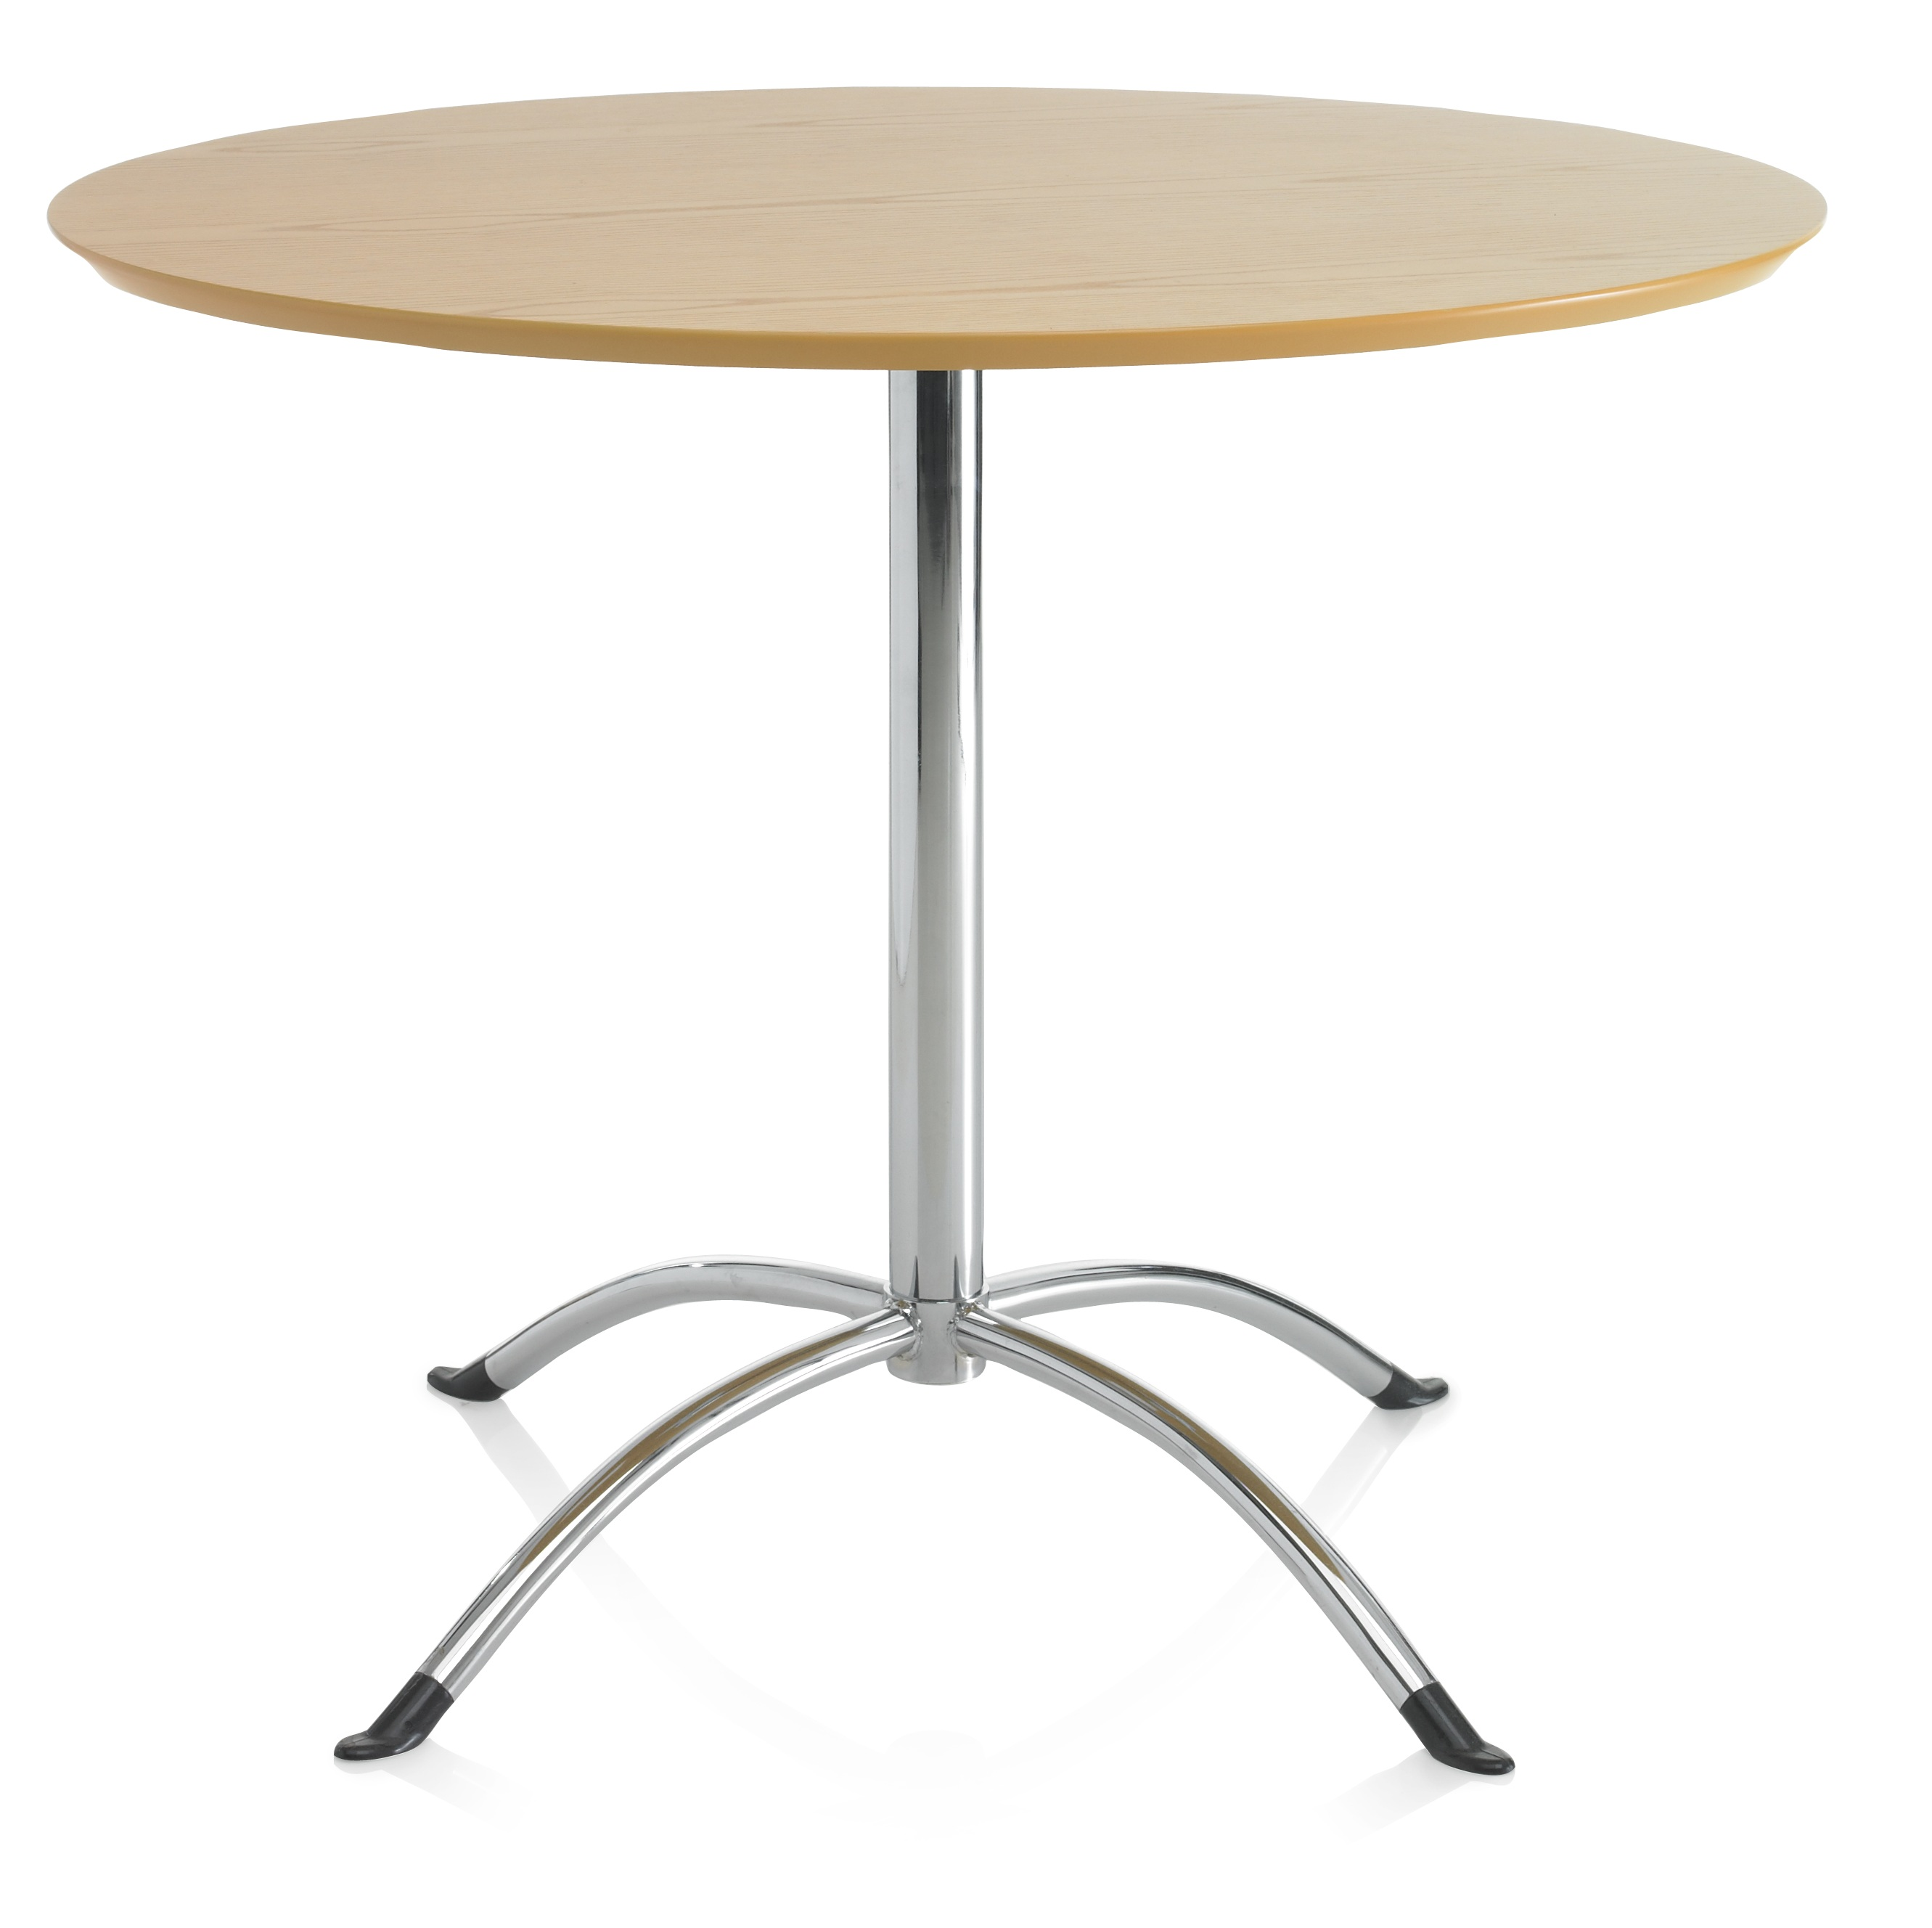 Ash veneer bistro dining table round 4 seater solid kitchen furniture ebay - Seater round dining table ...